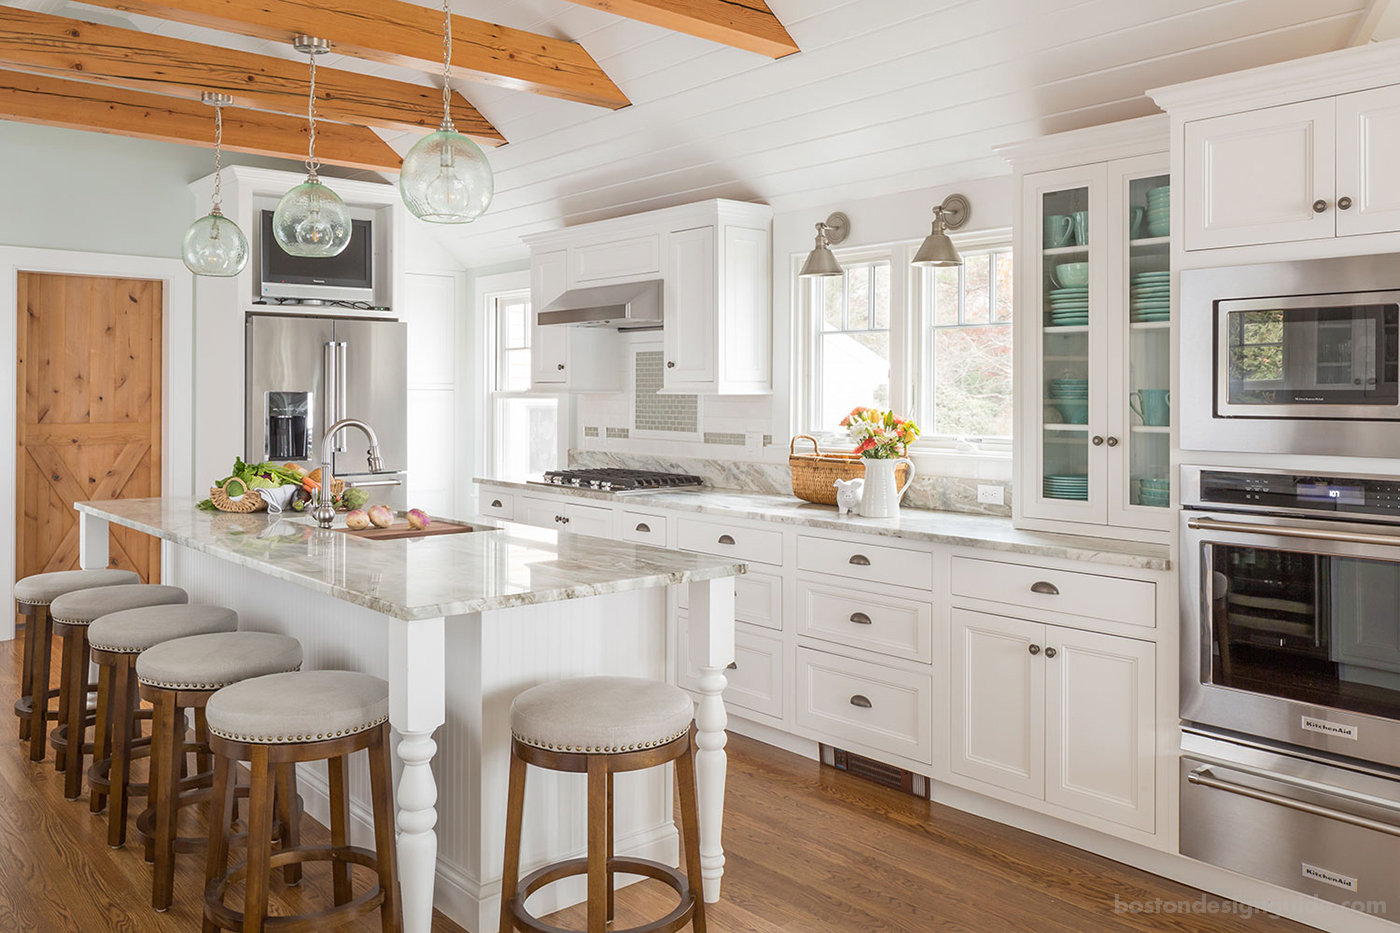 A Cape Cod Cottage-Style Kitchen\'s New Look | Boston Design ...